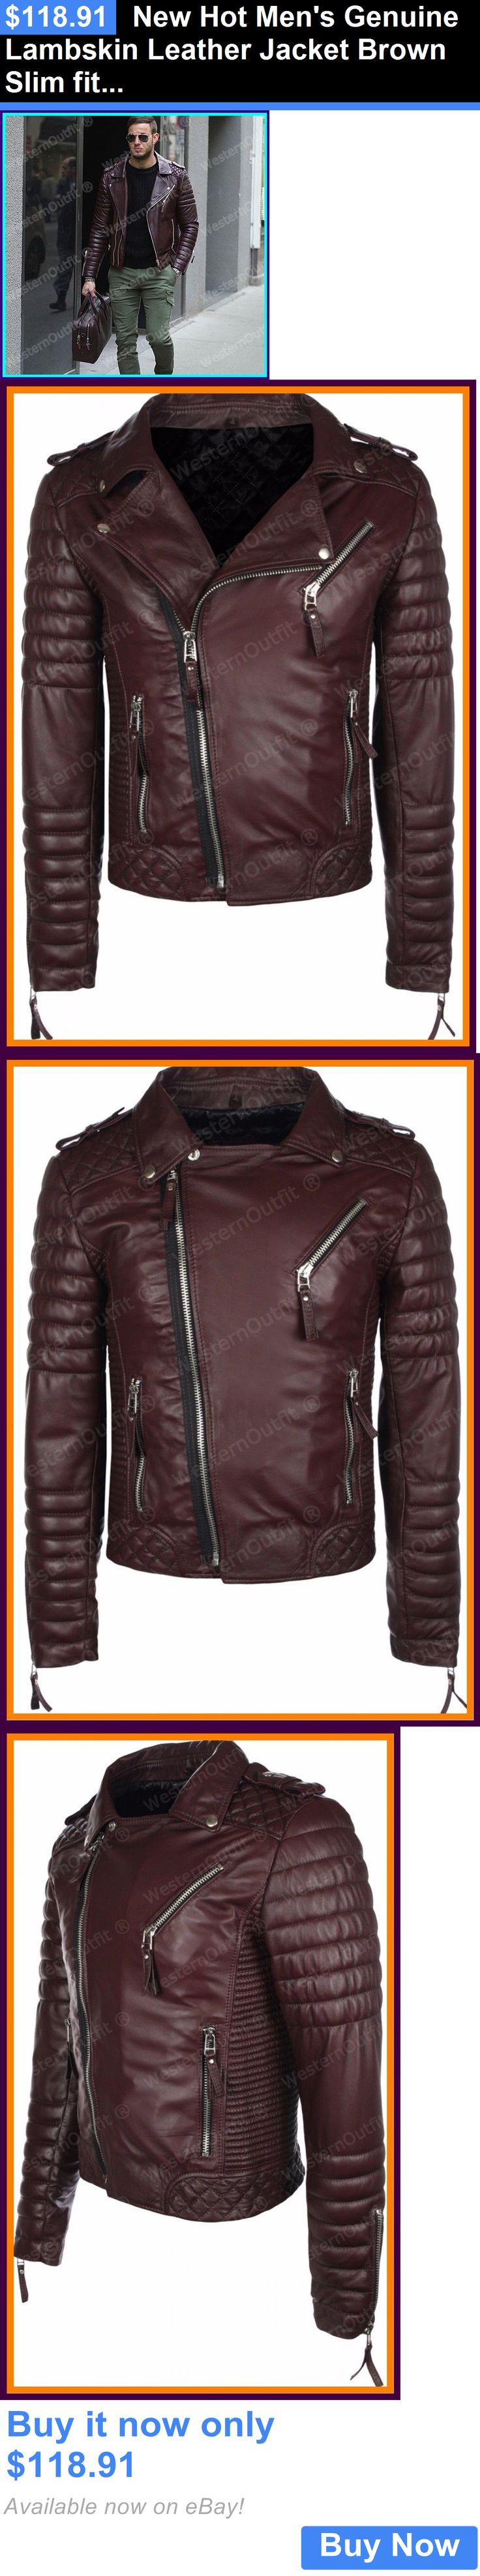 Men Coats And Jackets: New Hot Mens Genuine Lambskin Leather Jacket Brown Slim Fit Motorcycle Jacket BUY IT NOW ONLY: $118.91